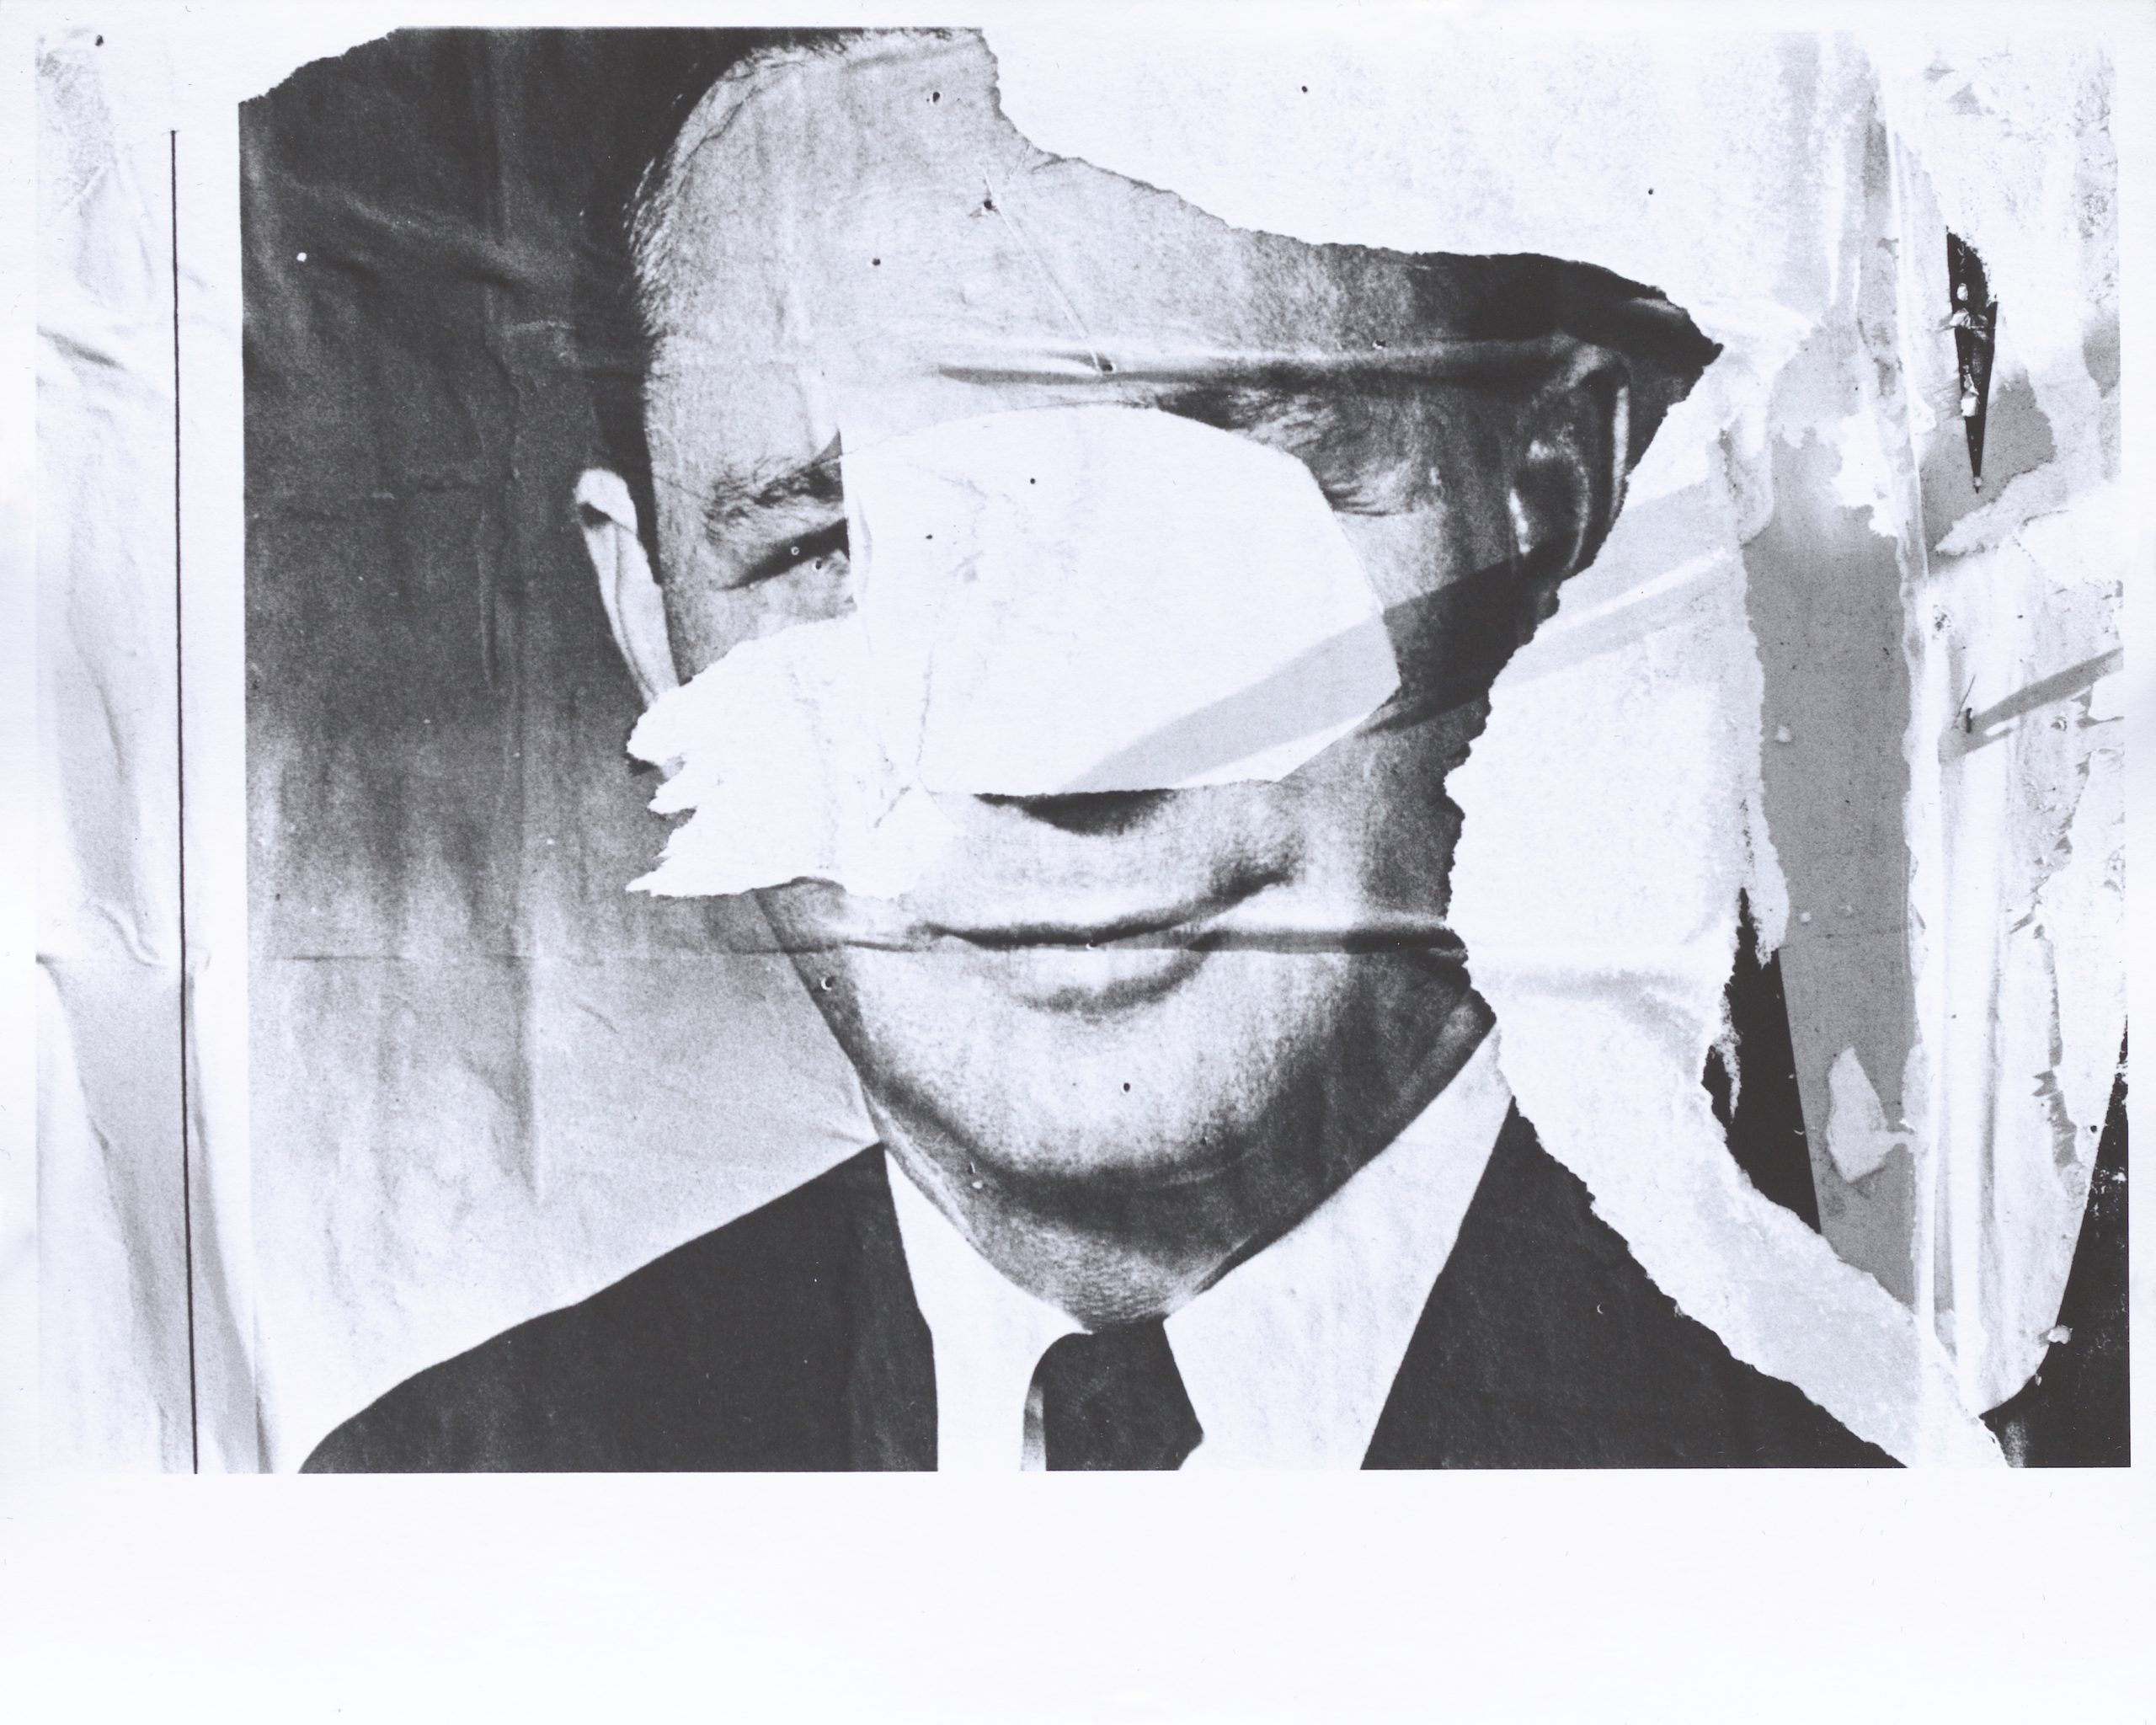 Black and white photograph of layered and torn signs that include the face of a man that has been torn leaving only a fragment of his face.